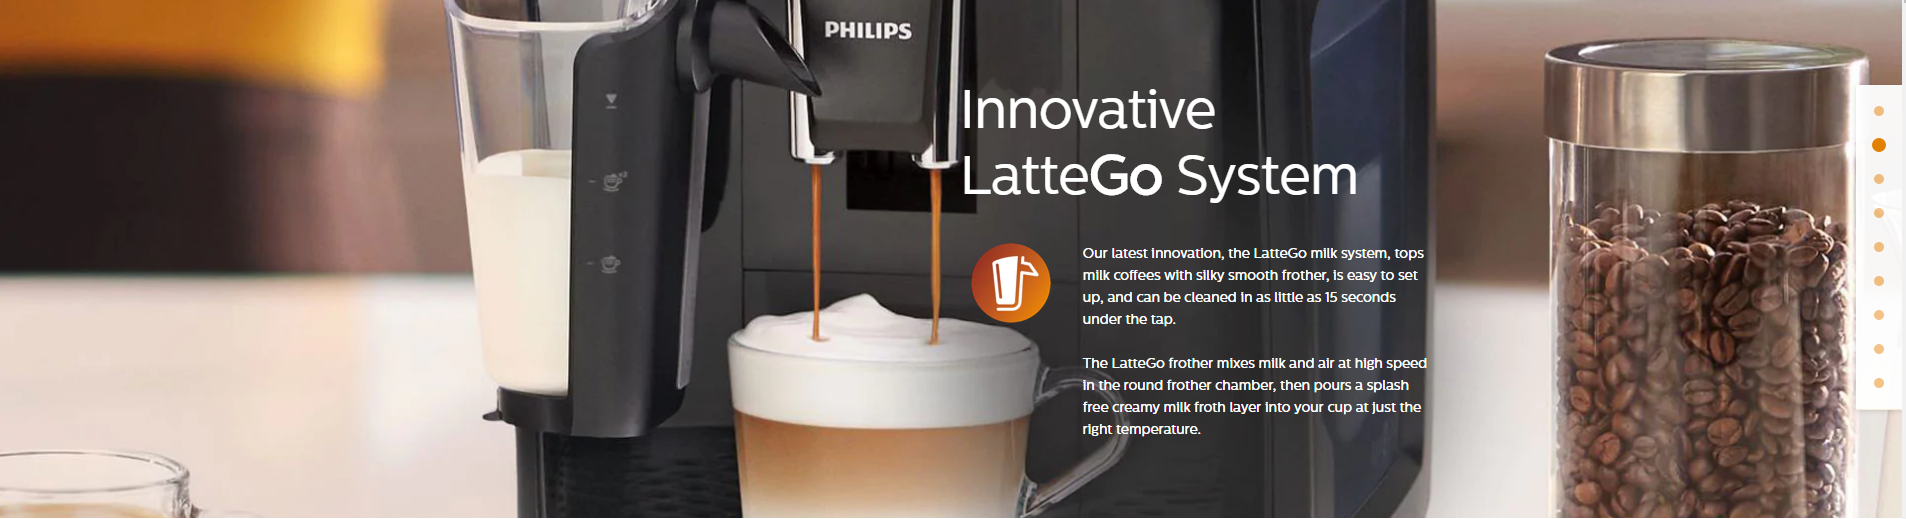 Philips Saeco 3200 Lattego Fully Automatic Espresso Machine - EP3241/54